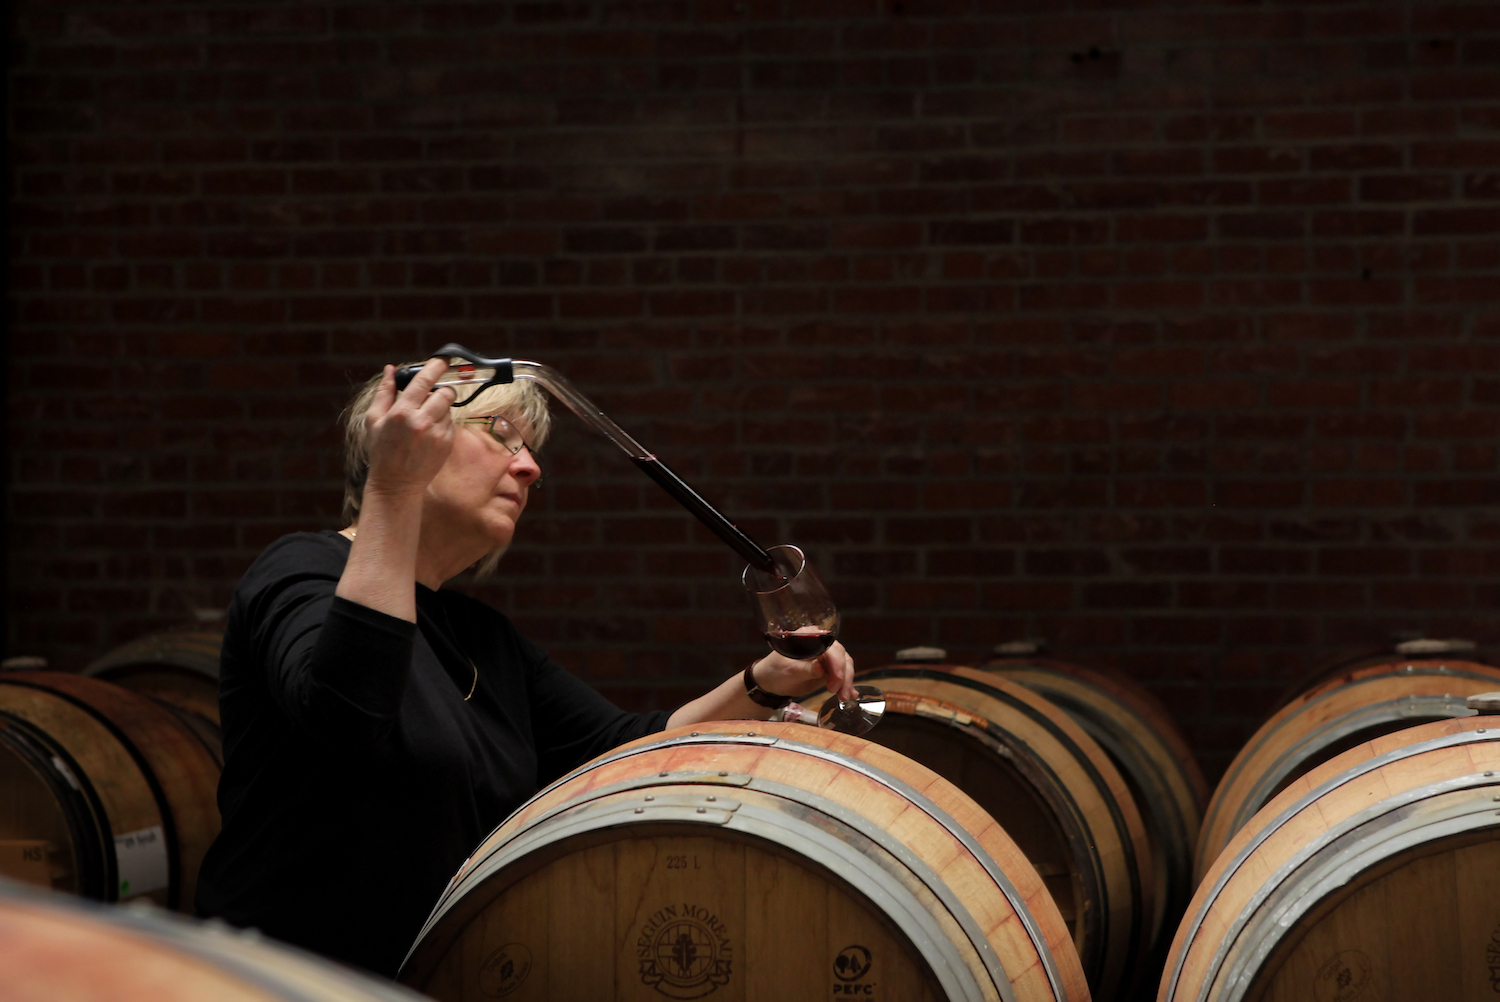 Urban Legend, Urban Legend Winery, Oakland, Oakland winery, Oakland tasting room, wine tasting, woman taking wine out of a barrel, Oakland, California, The Press